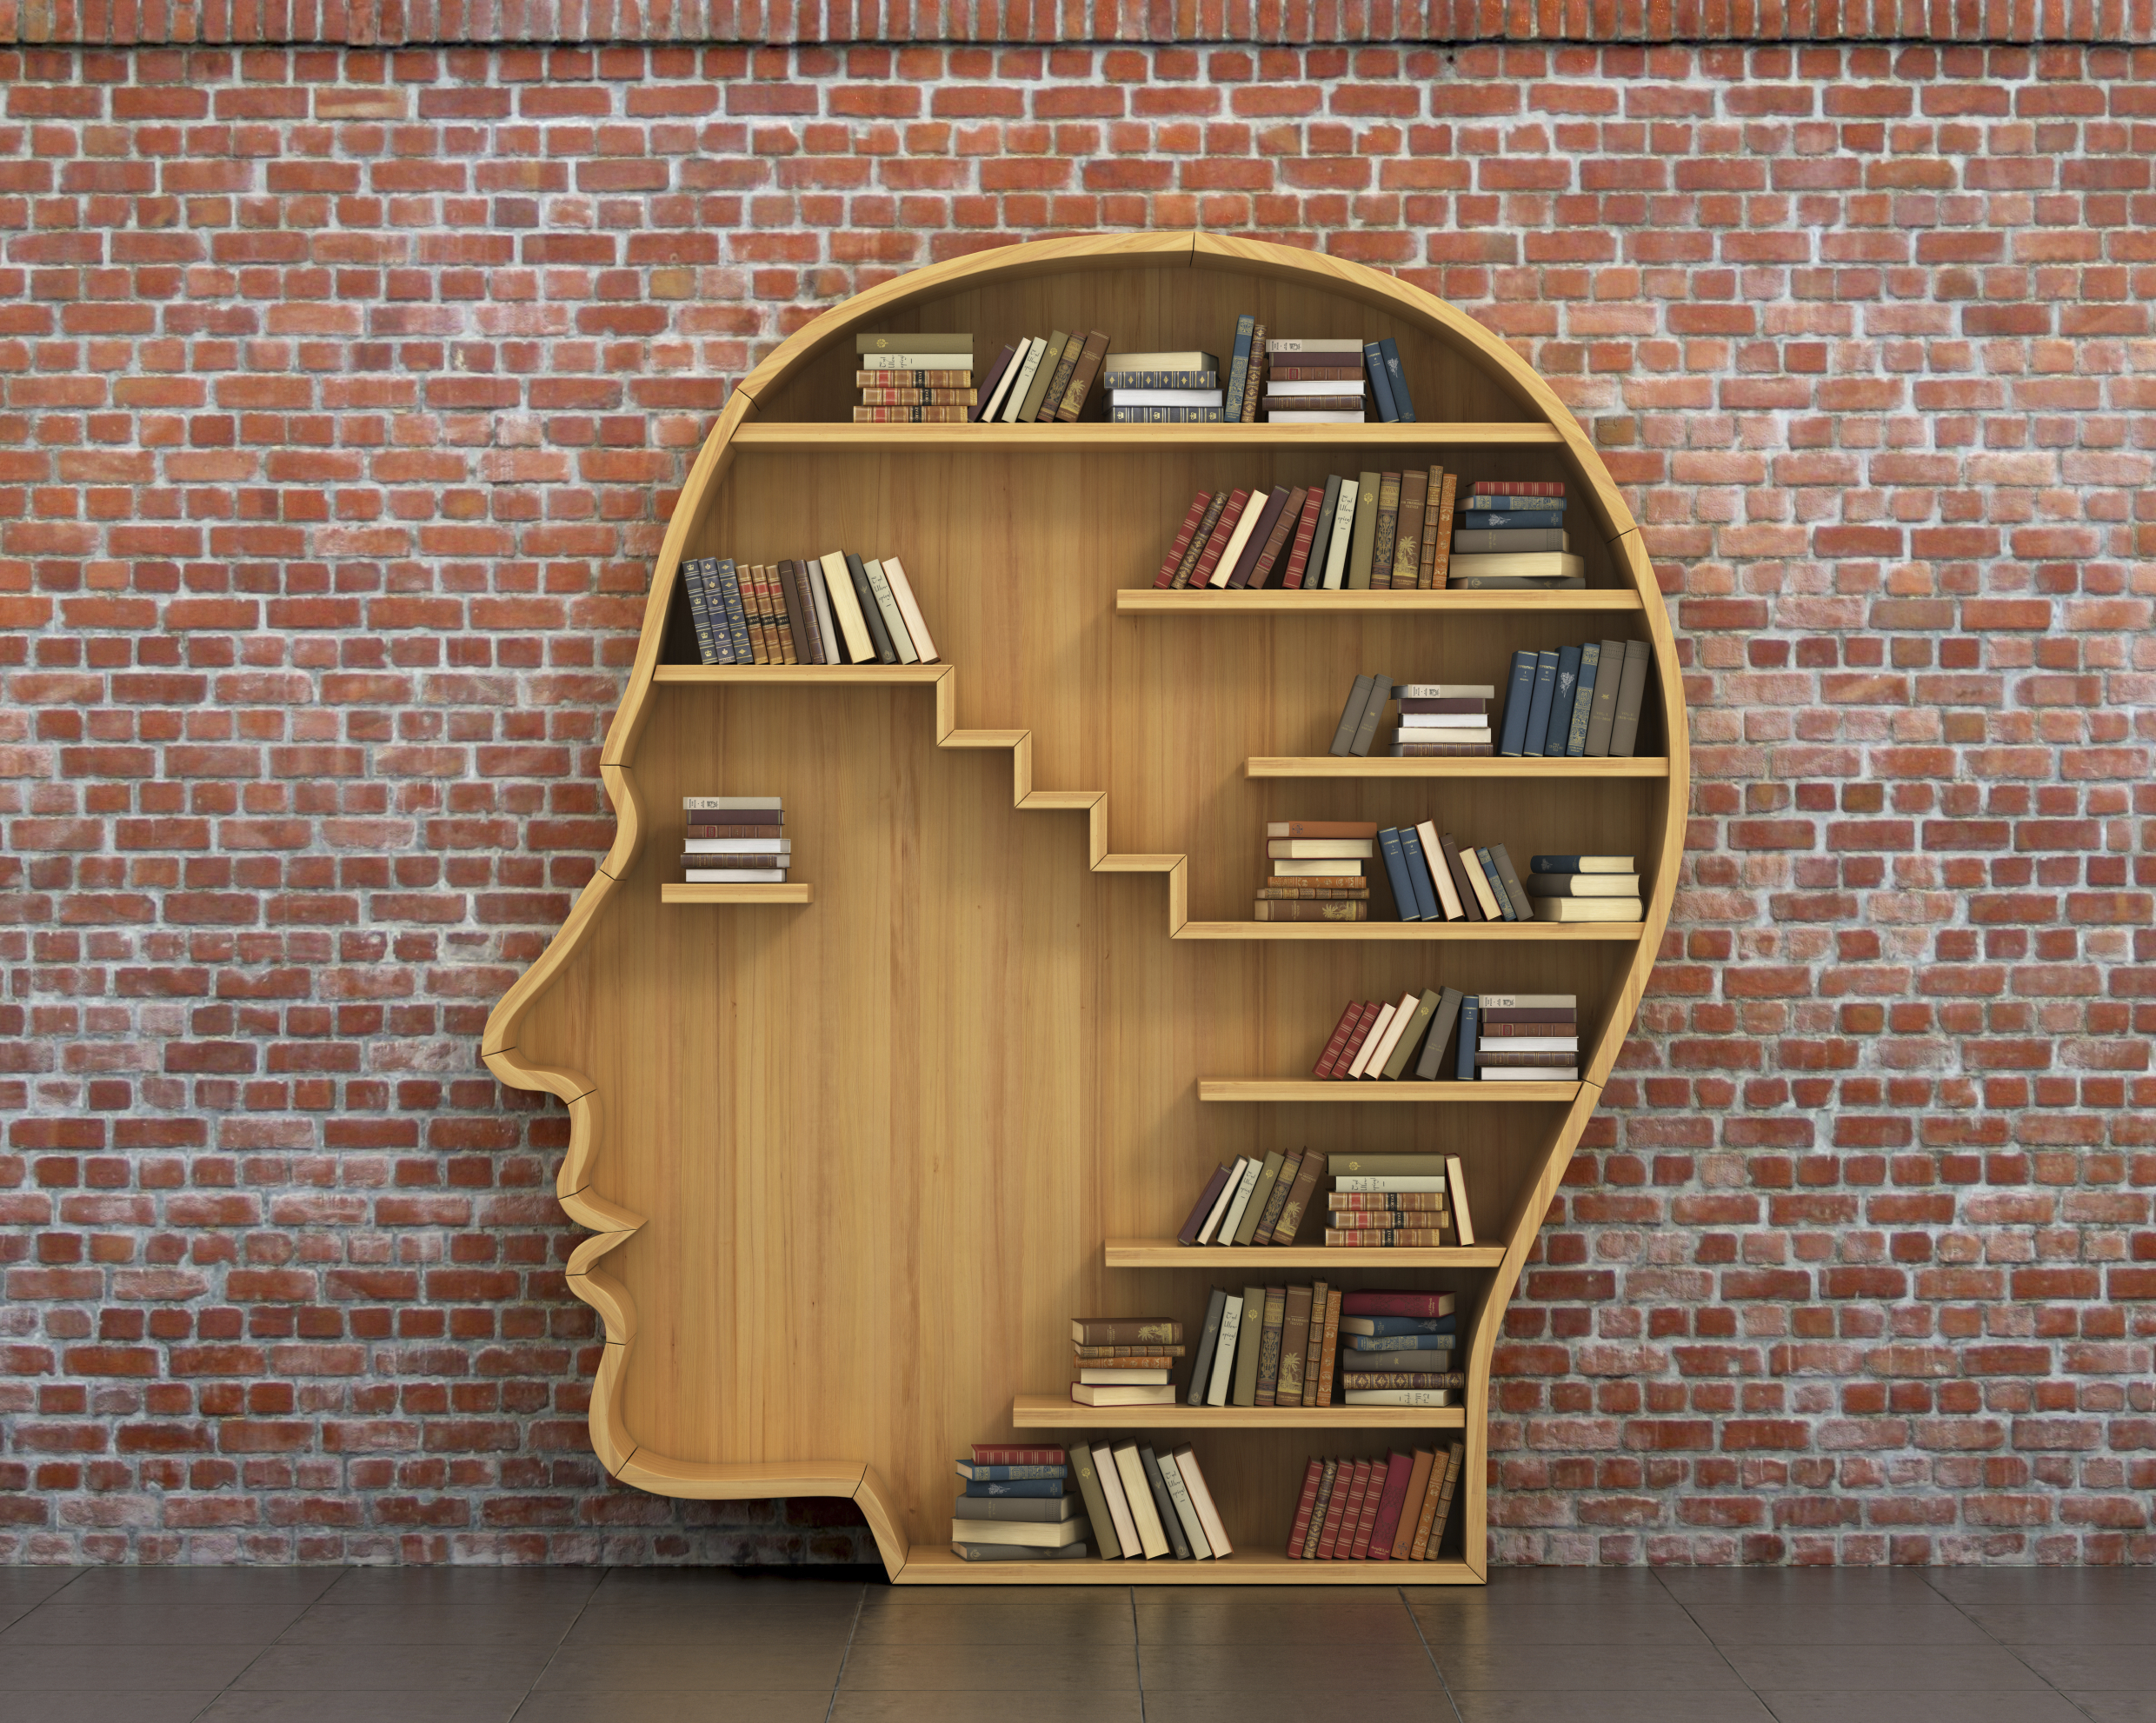 Concept of training. Wooden bookshelf full of books in form of man head on a bricks background. Science about human. Psychology. A human have more knowledge.